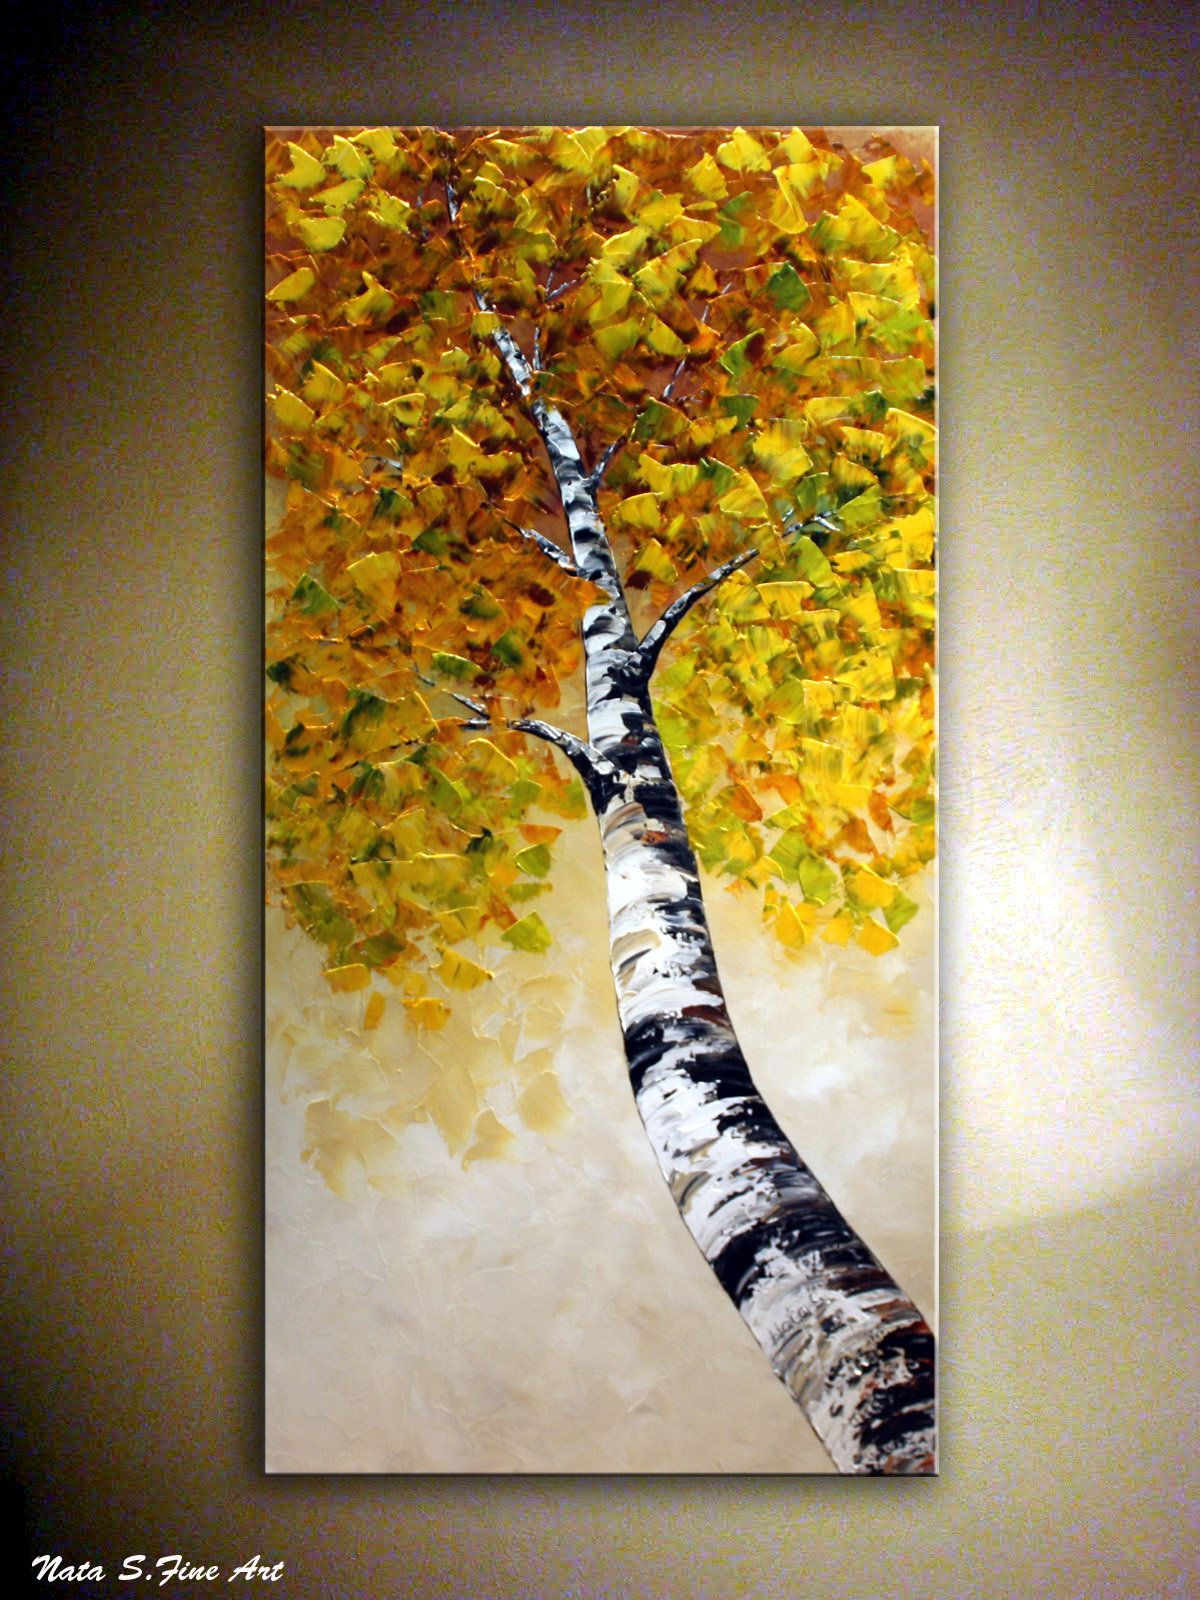 Birch Tree Painting, Fall Tree Painting, Abstract Texture Art, Aspen Tree Painting, Large Autumn Painting, Home/Office Wall Decor by Nata S #falltrees